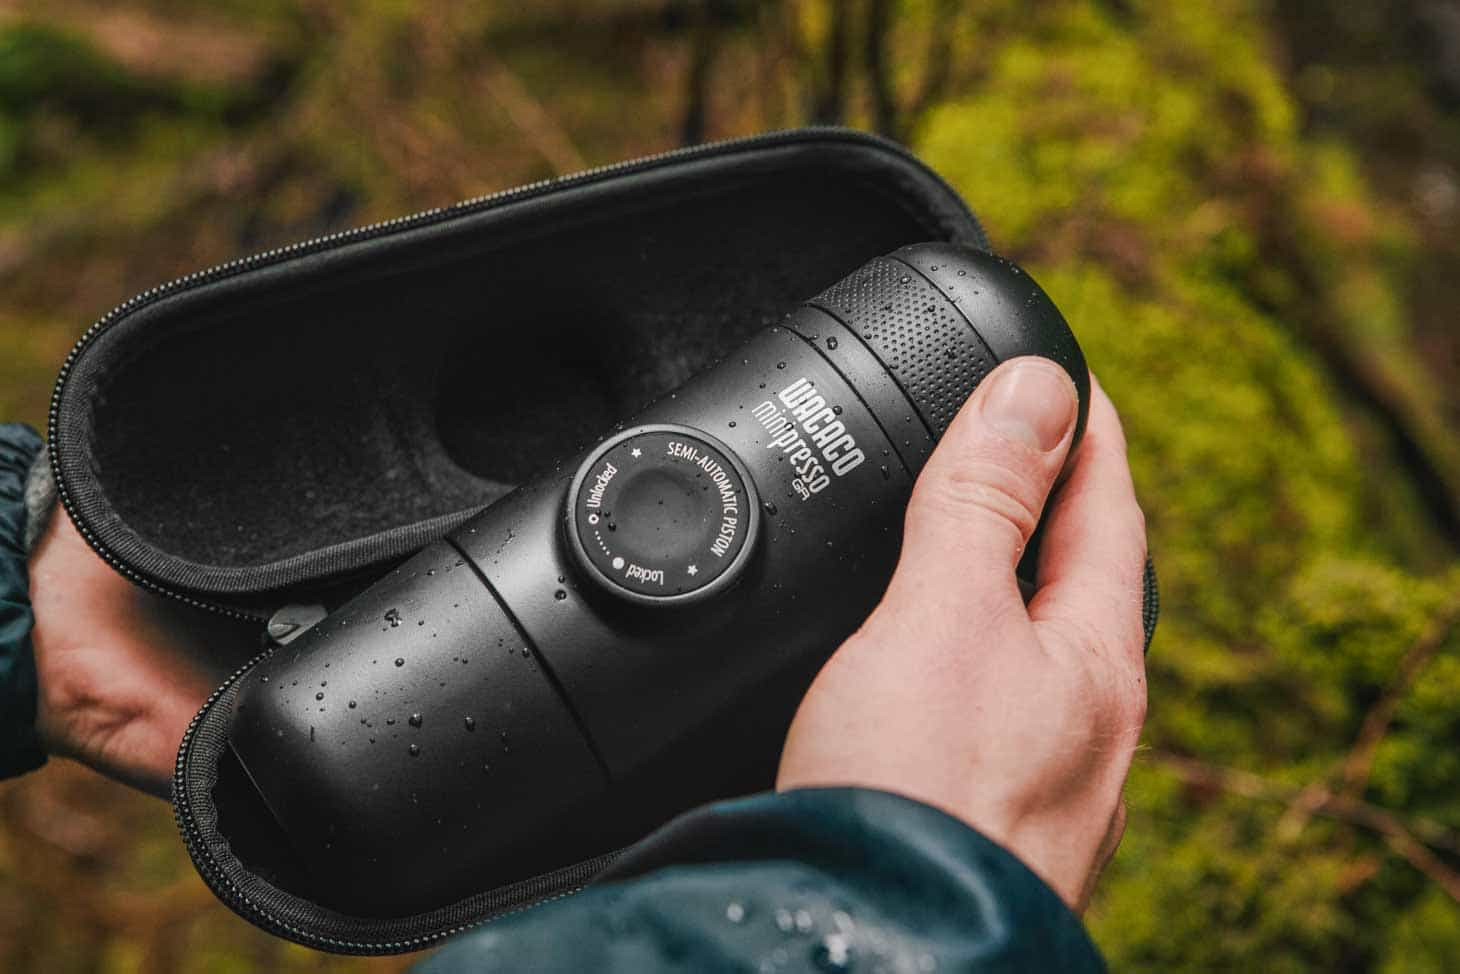 The Wacaco Minipresso - Compact, handheld espresso maker for camping